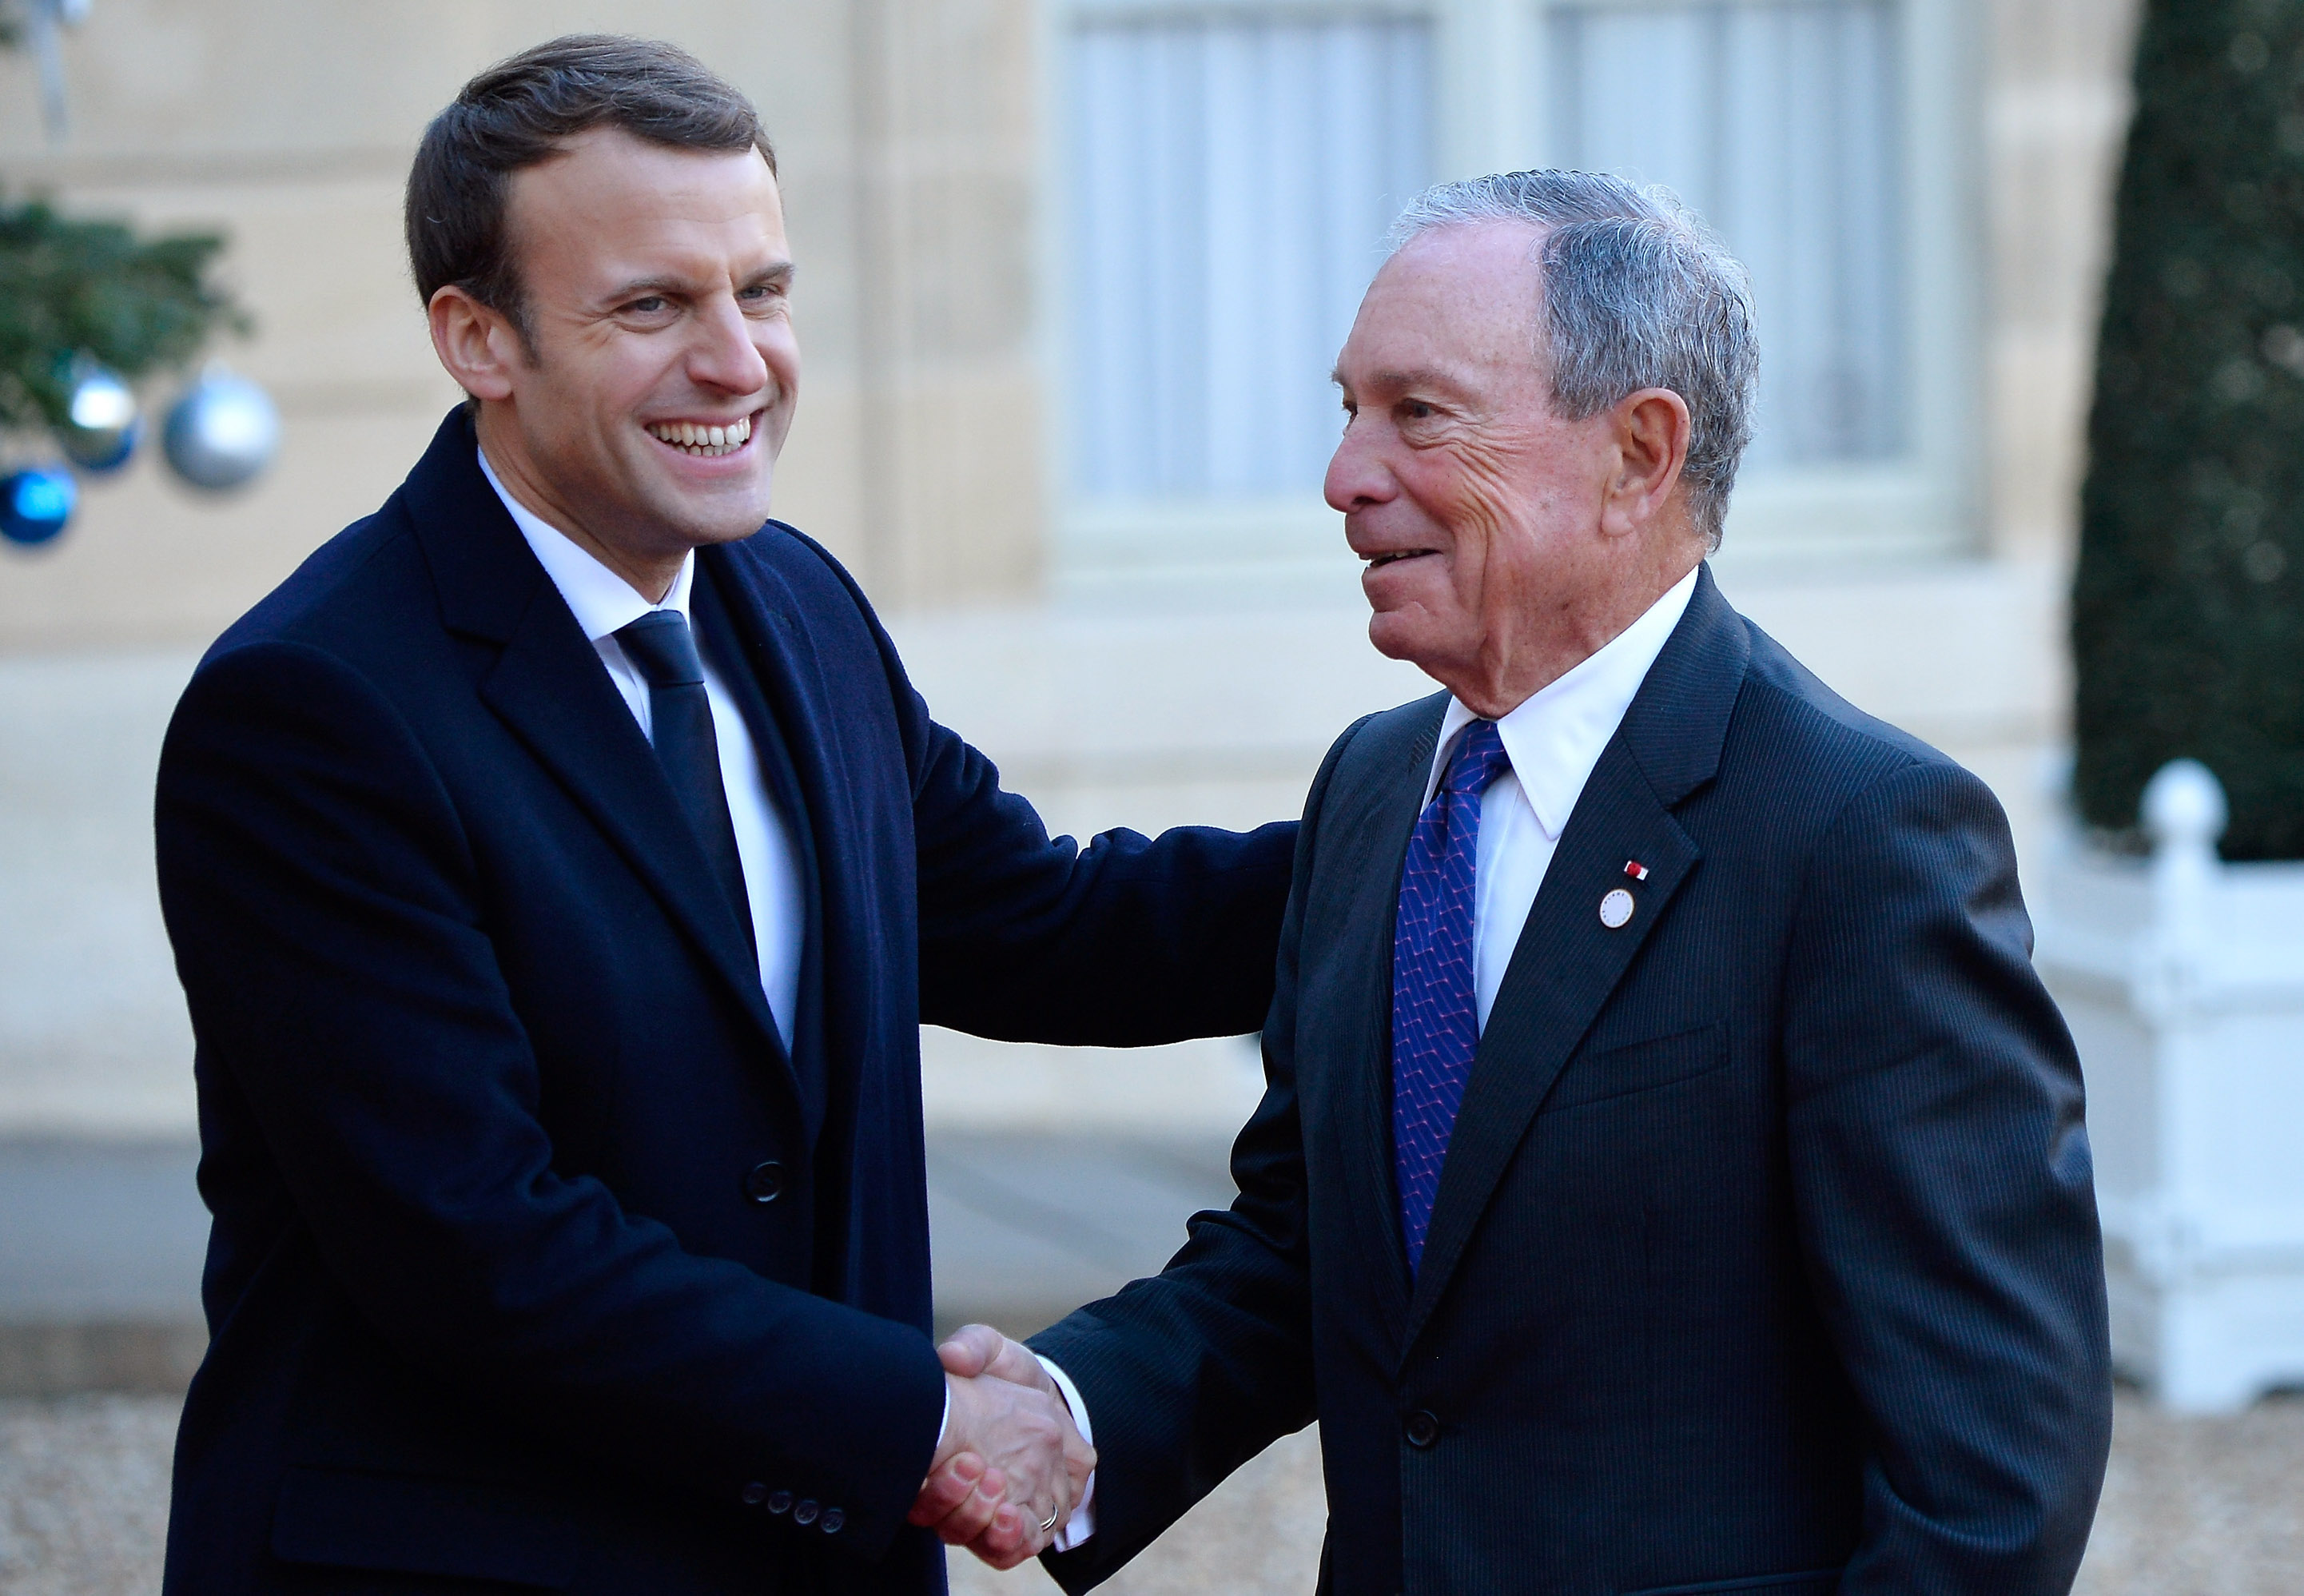 French President Emmanuel Macron and Mike Bloomberg shaking hands.